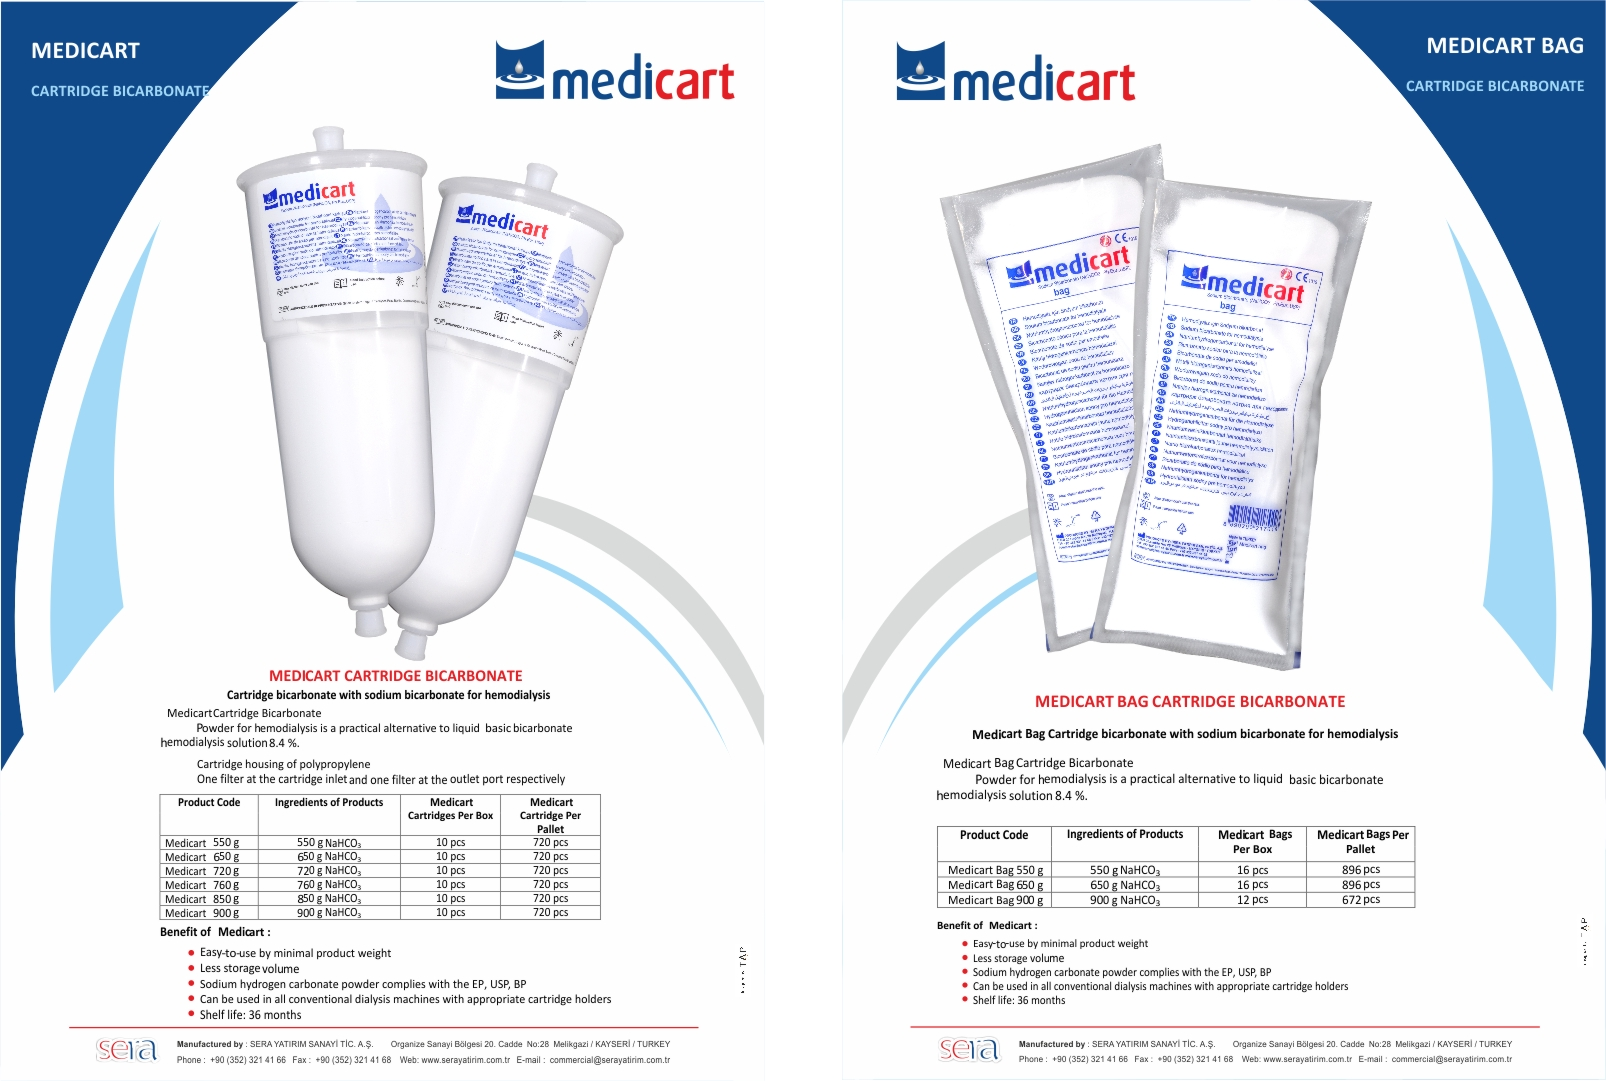 Medicart Cartridge Bicarbonate Brochure